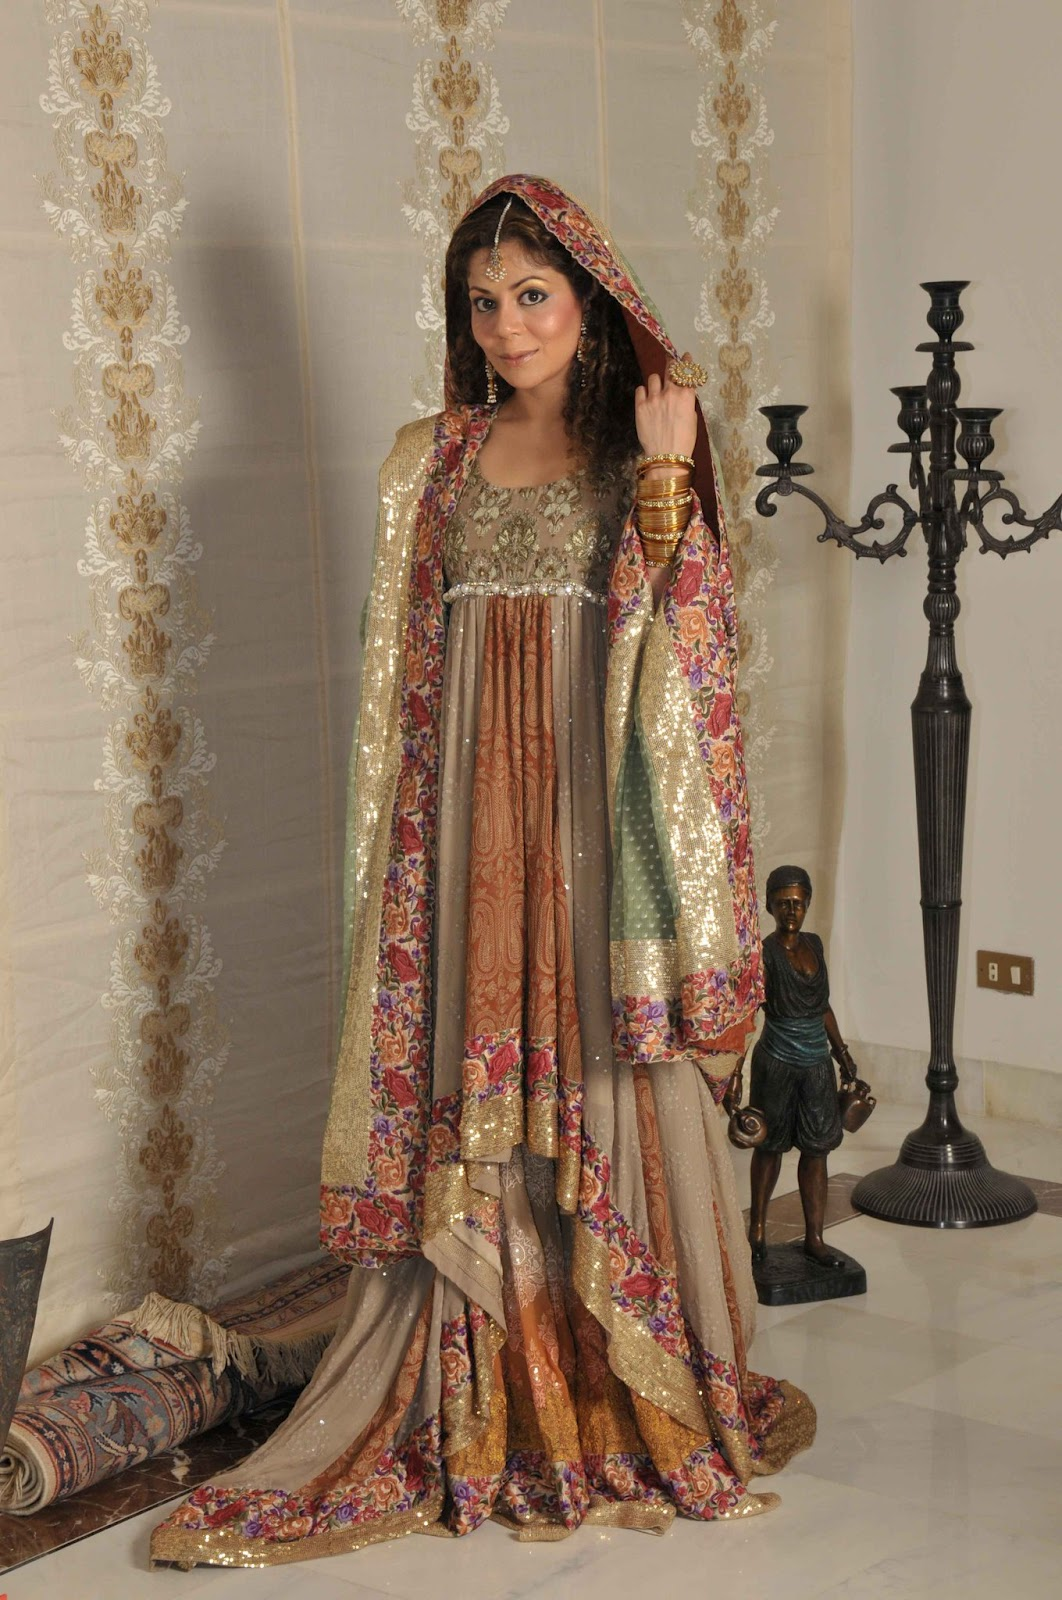 Fashion Freaks: New Trends In The Pakistani Wedding Dresses